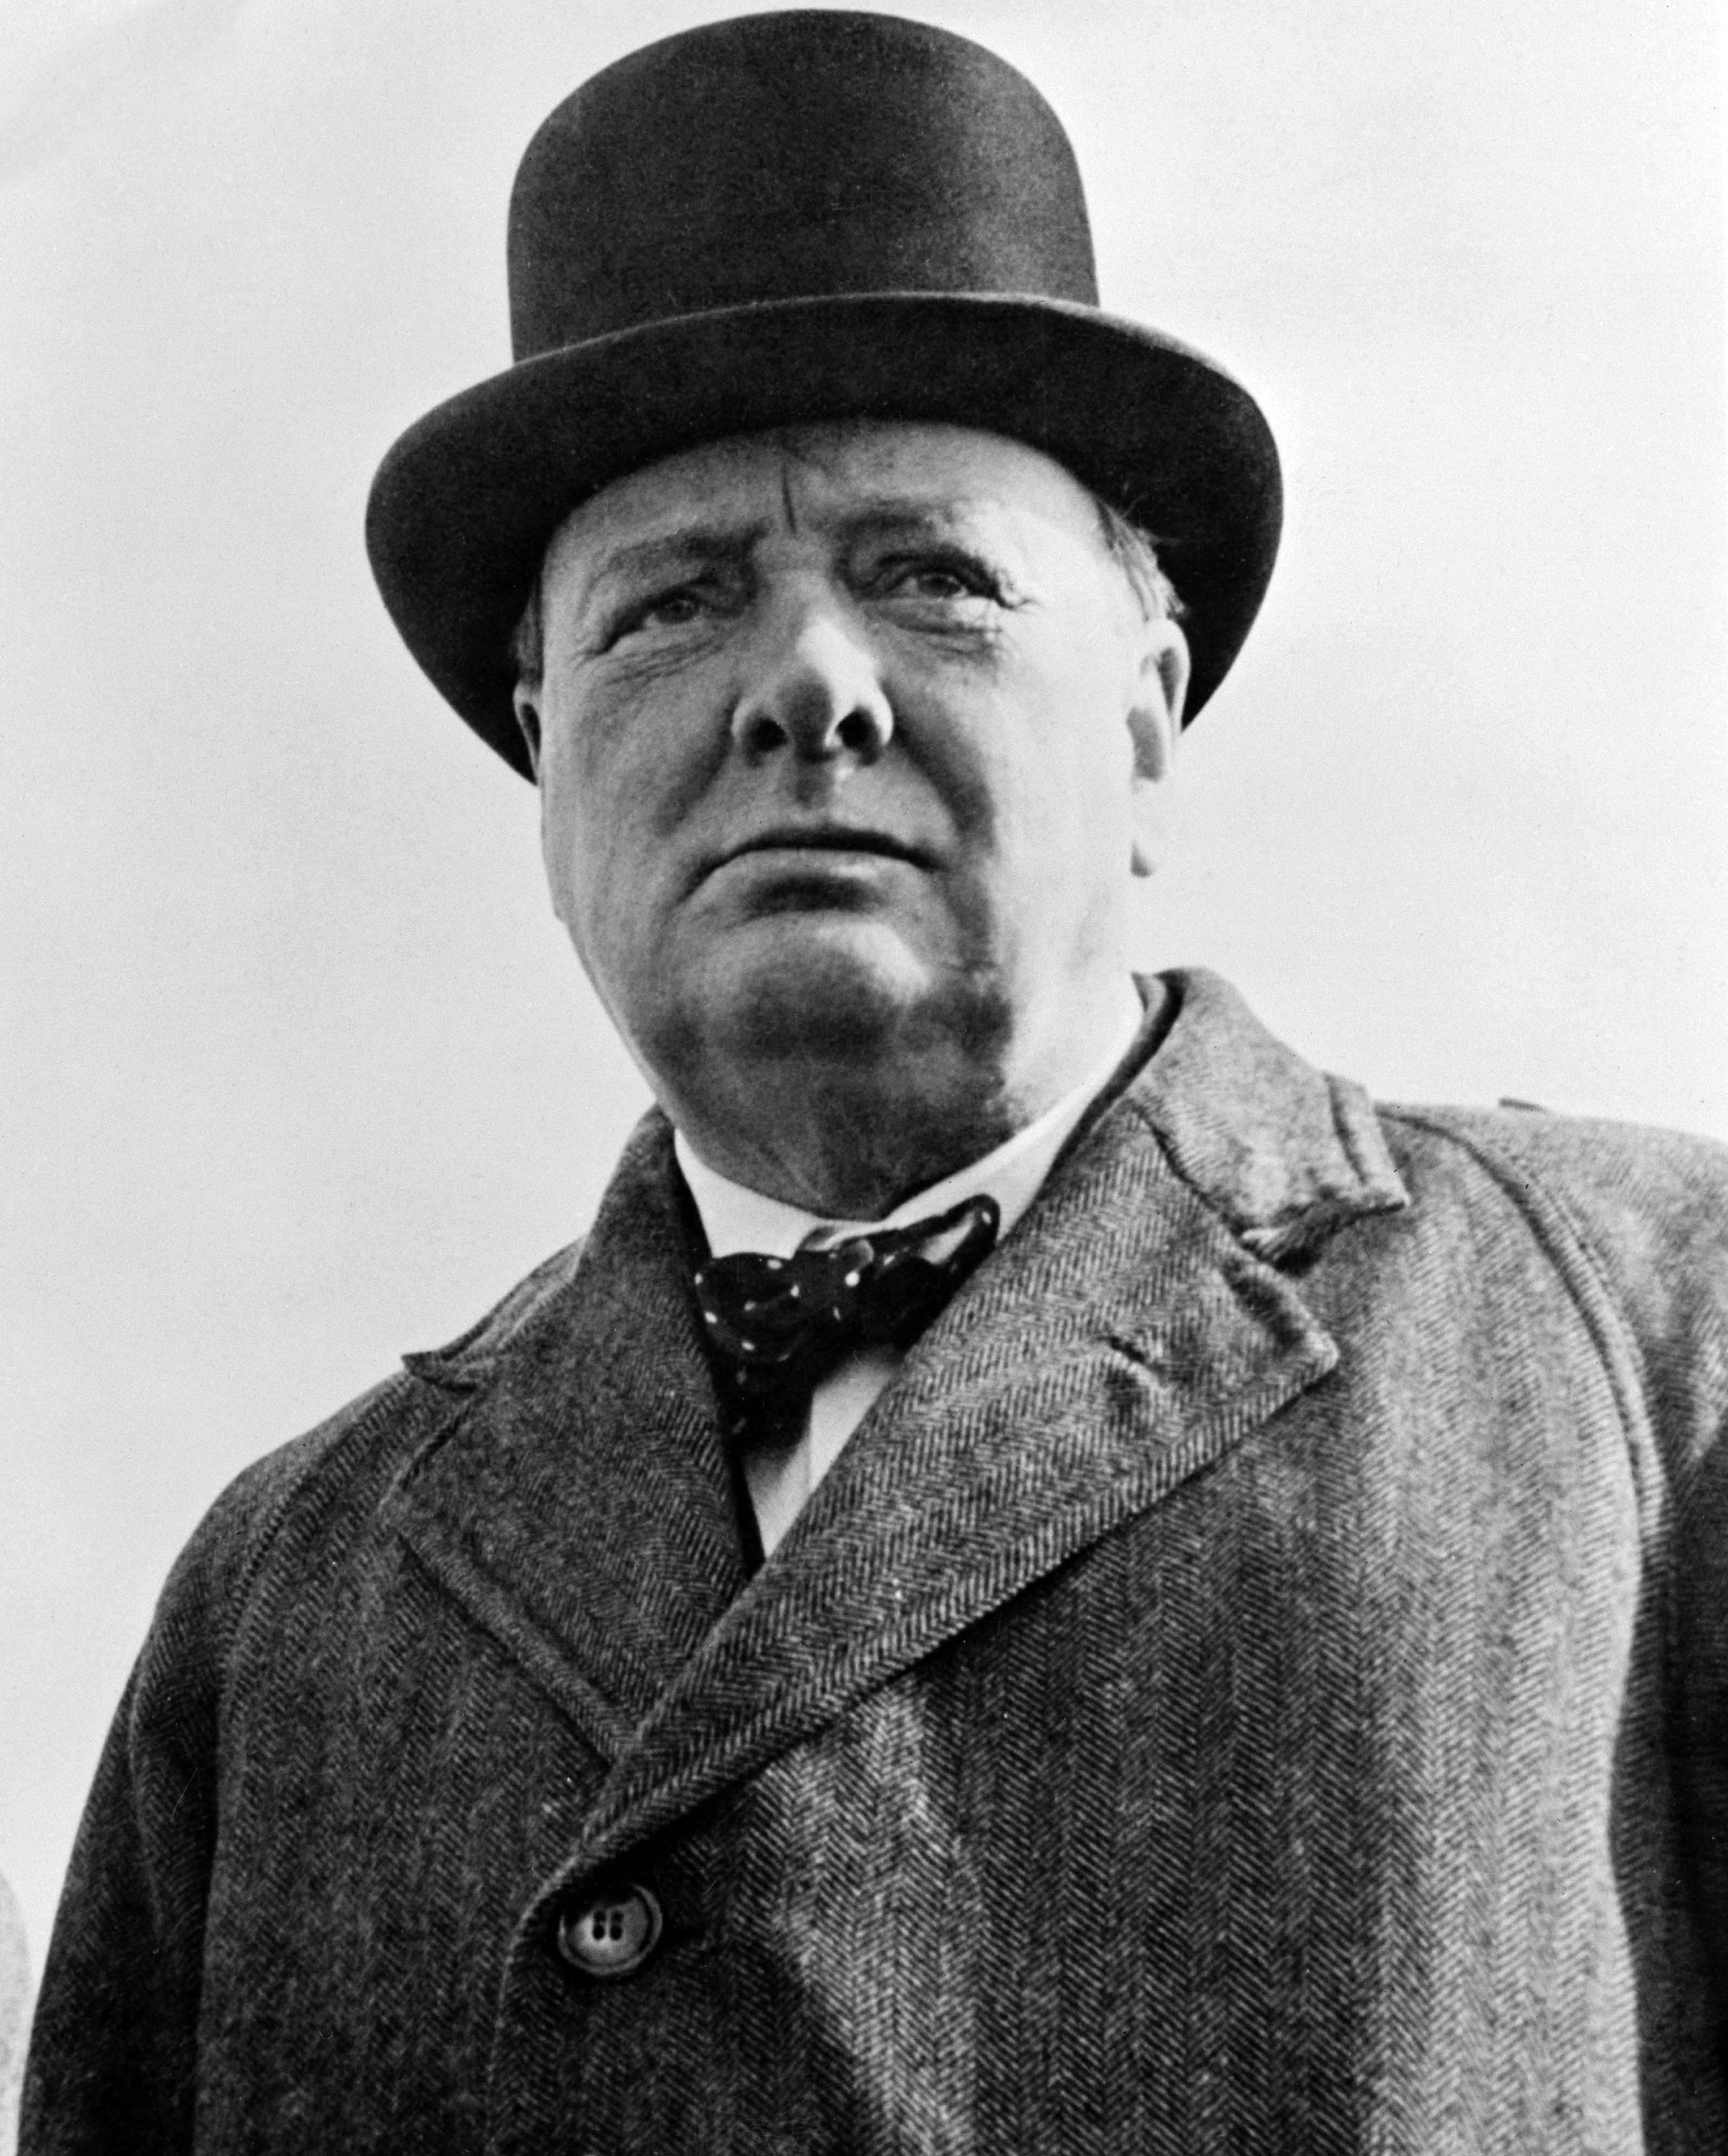 Photograph of Winston Churchill looking pensive while wearing an overcoat, tophat, and bowtie